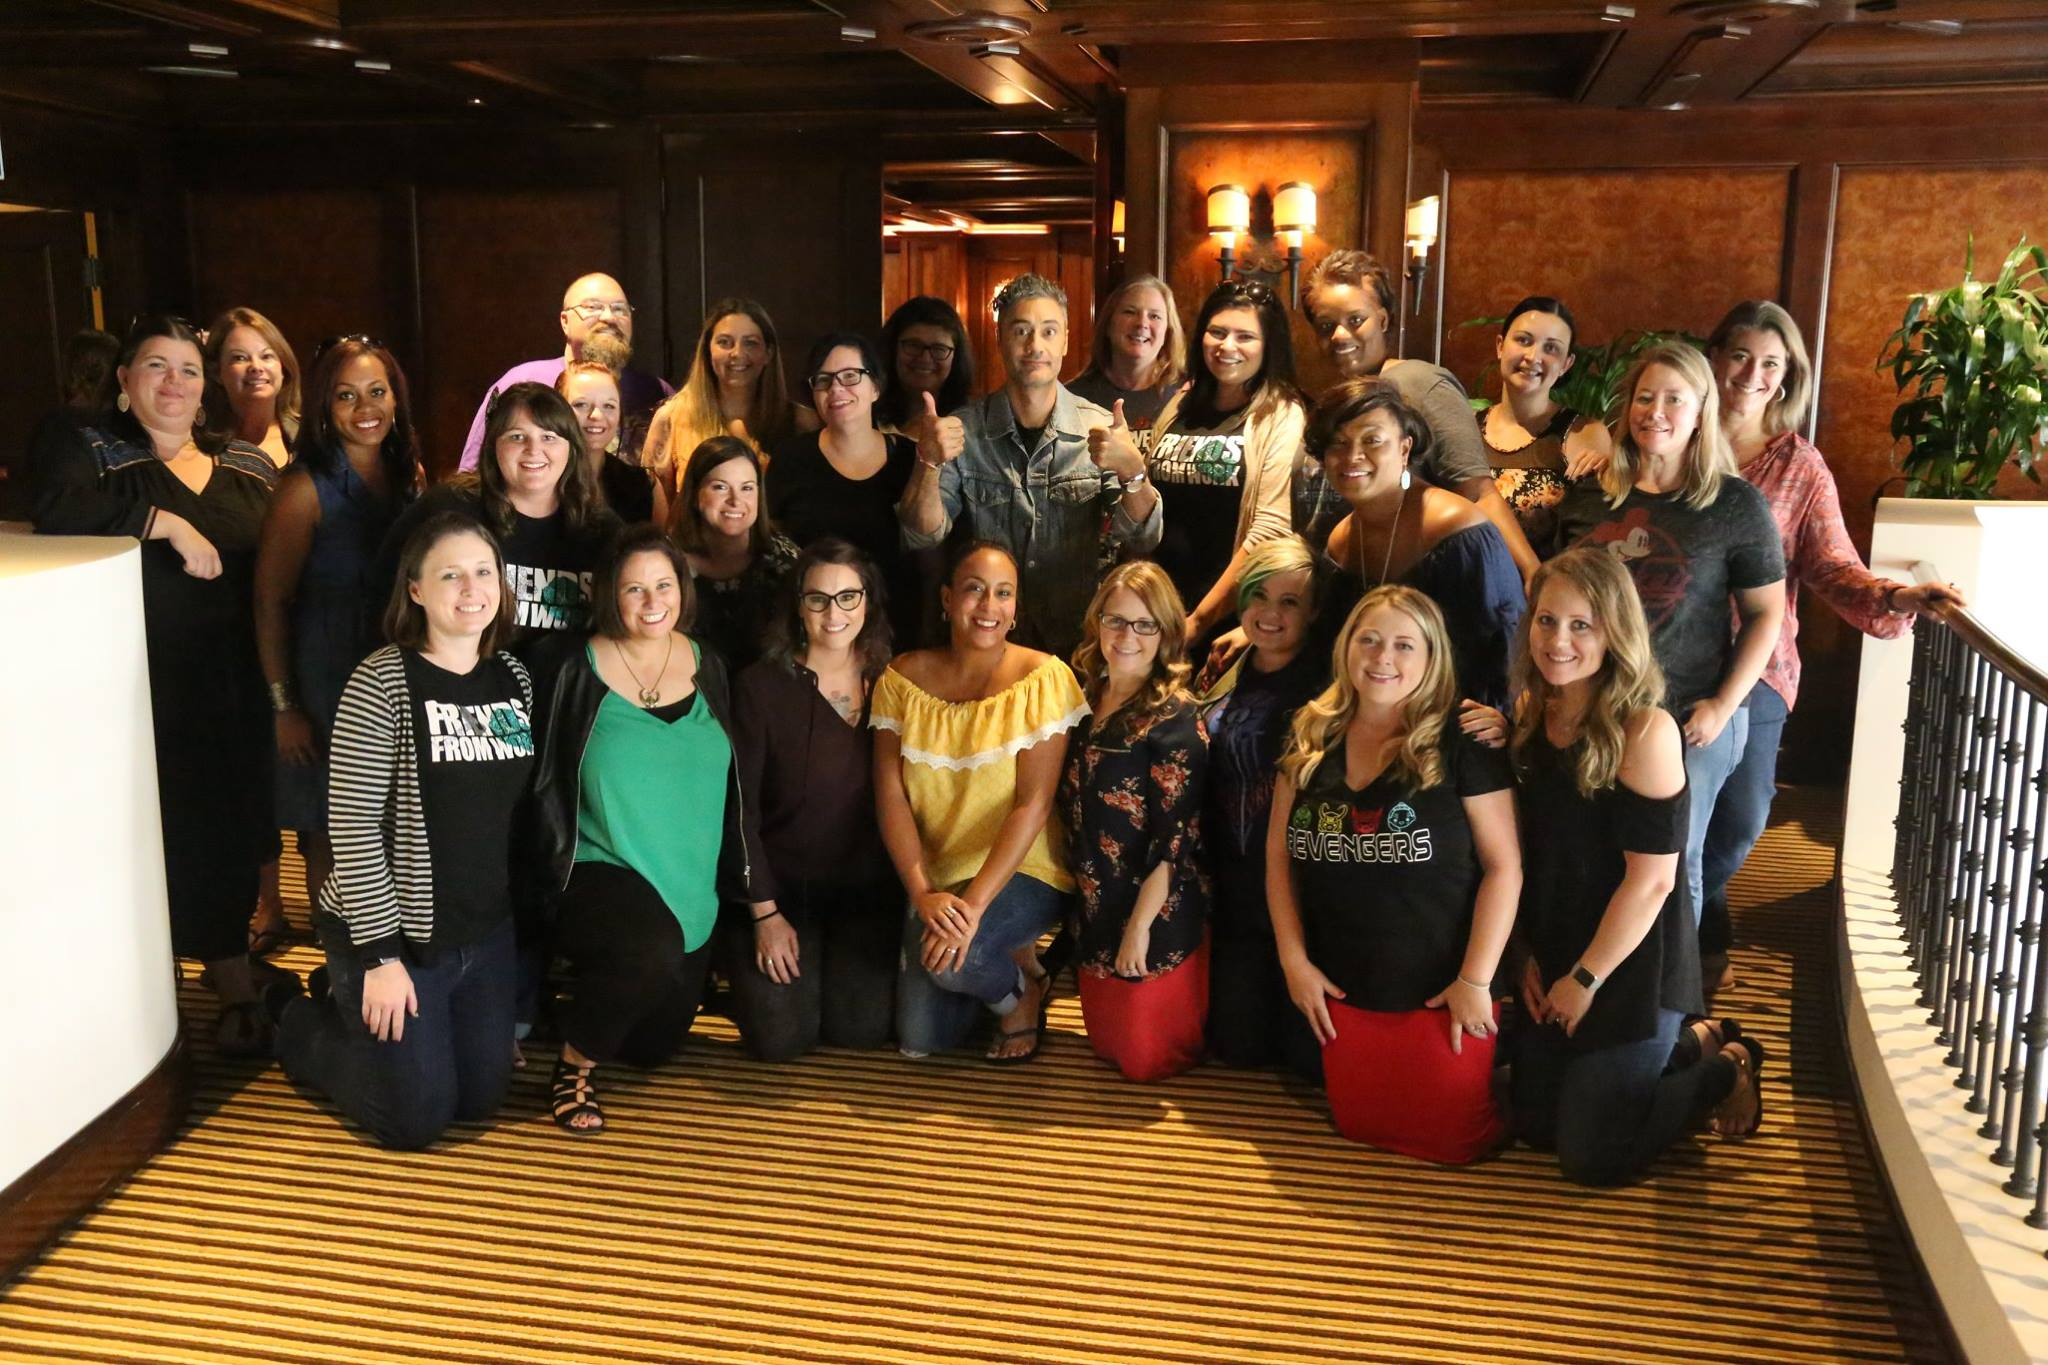 Take Waitit Director of Thor:Ragnarok with the #ThorRagnarokEvent bloggers